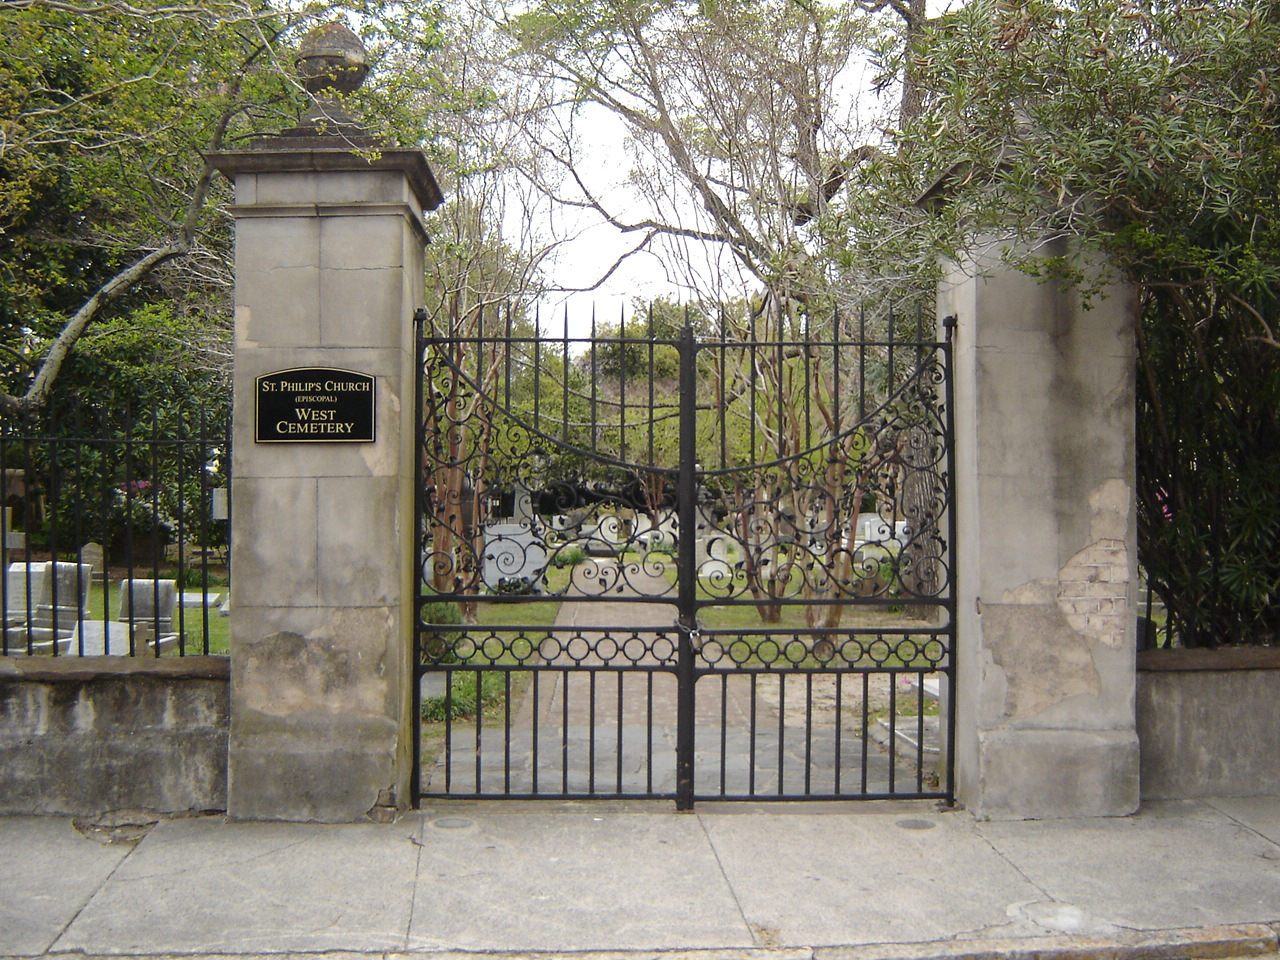 Gate clipart charleston sc St of West Cemetery Scares